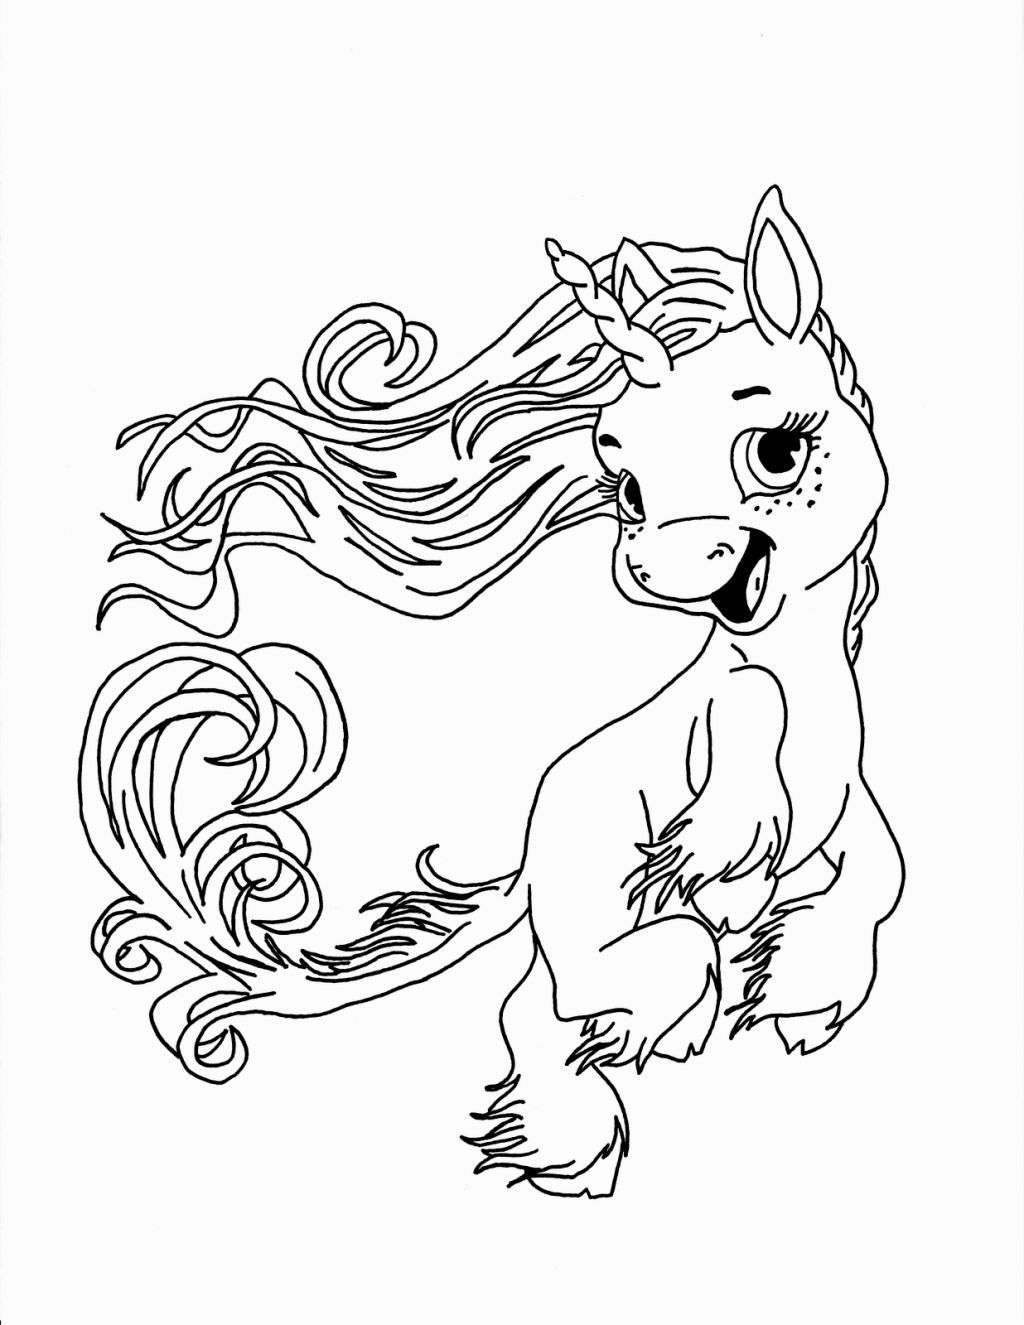 Cute Baby Unicorn Coloring Page Unicorn Coloring Pages Unicorn Pictures To Color Horse Coloring Pages